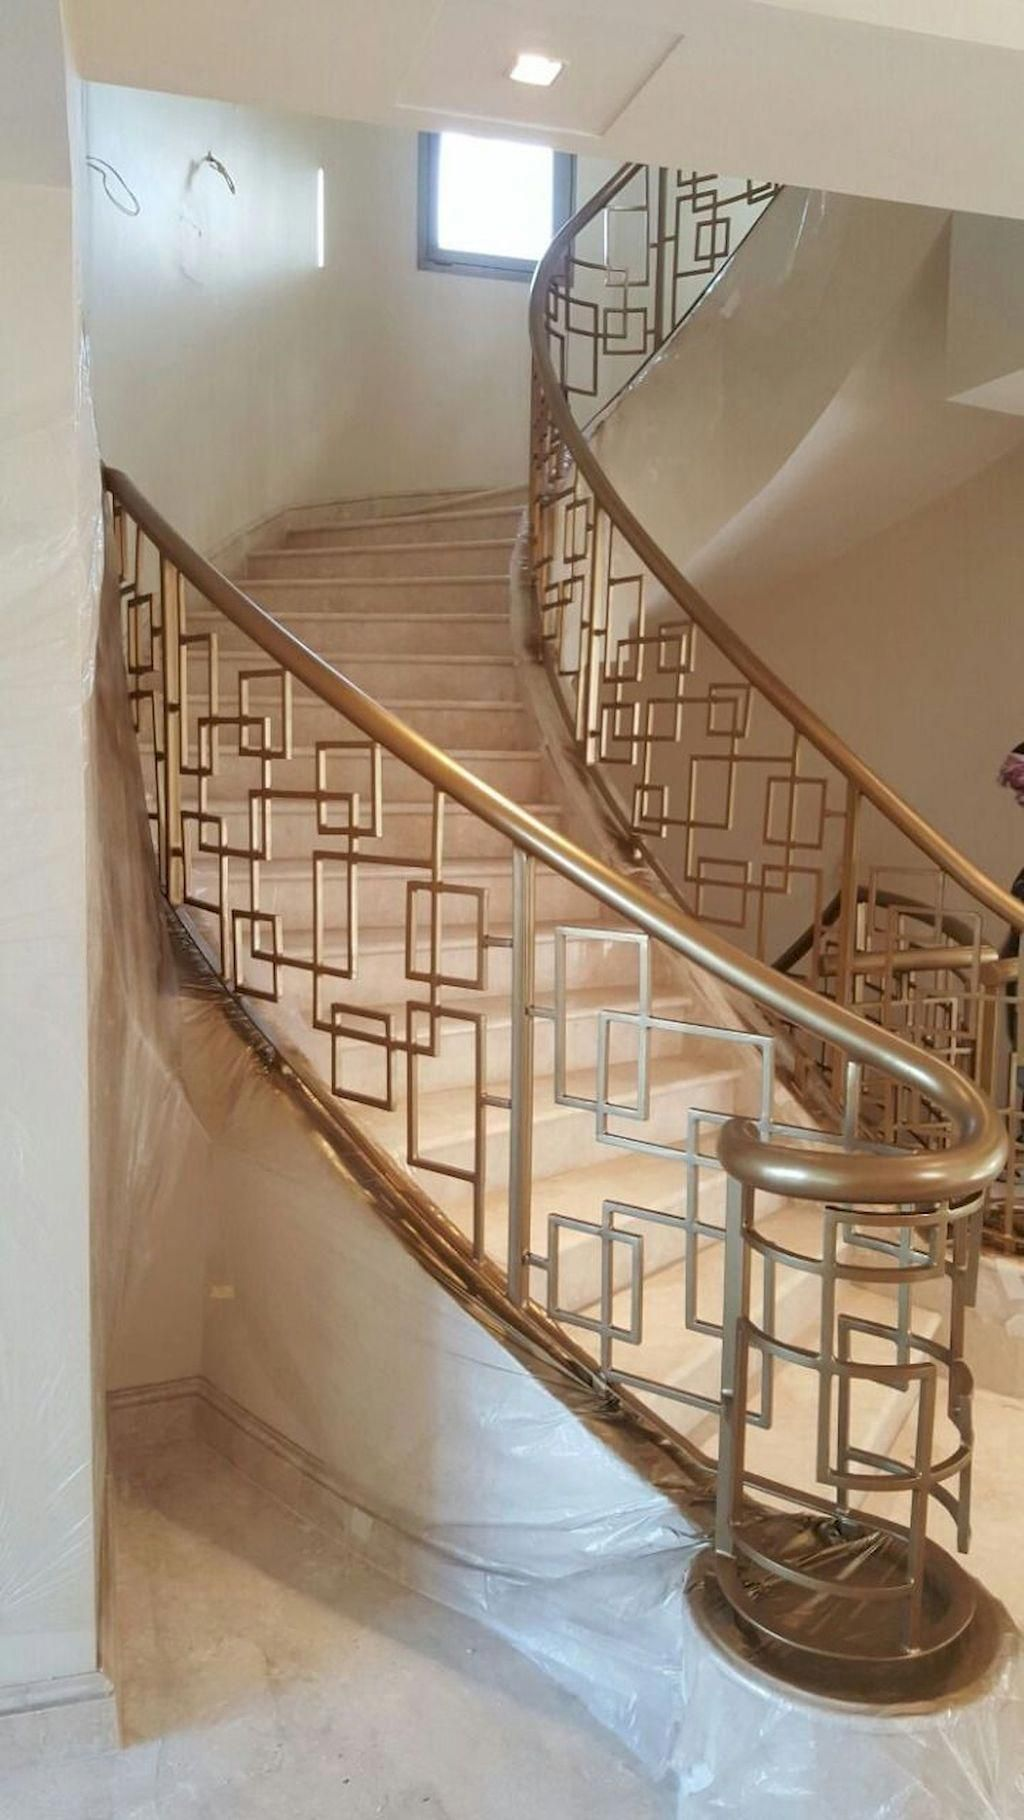 Look At This Magnificent Photo What An Original Version Craftsmanstaircase In 2020 Staircase Railing Design Staircase Design Outdoor Stair Railing